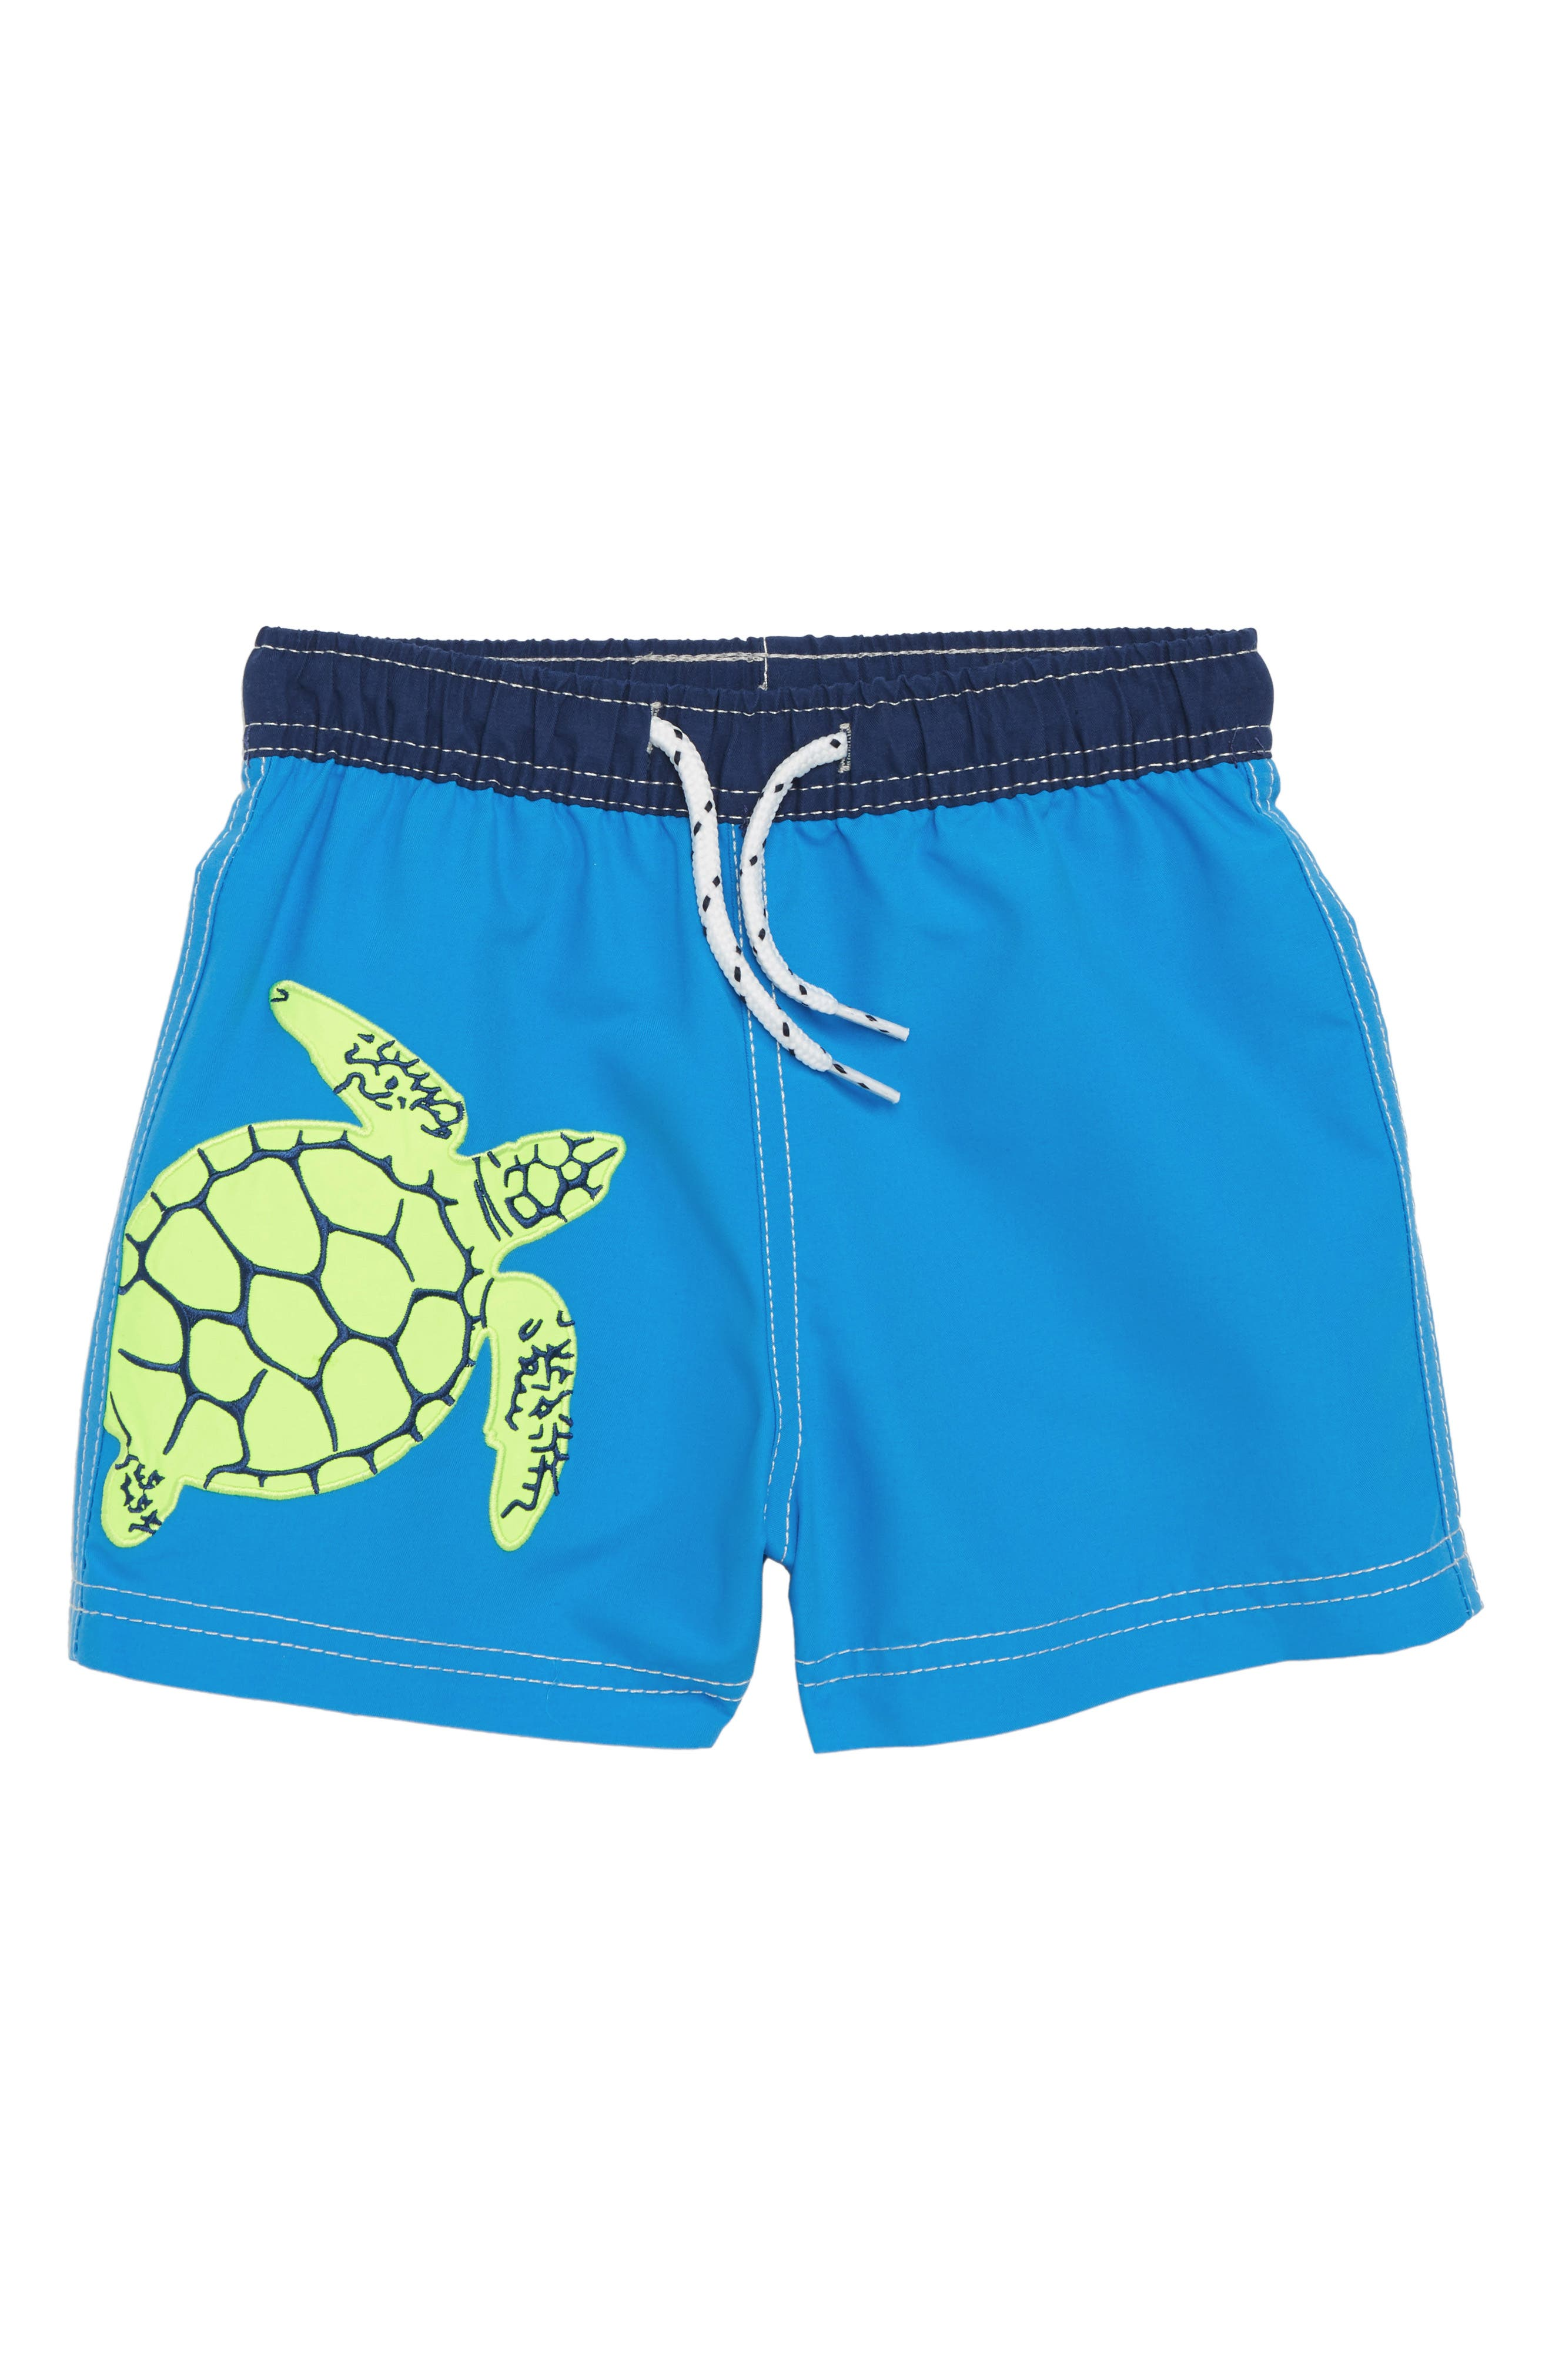 Embroidered Turtle Swim Trunks,                             Main thumbnail 1, color,